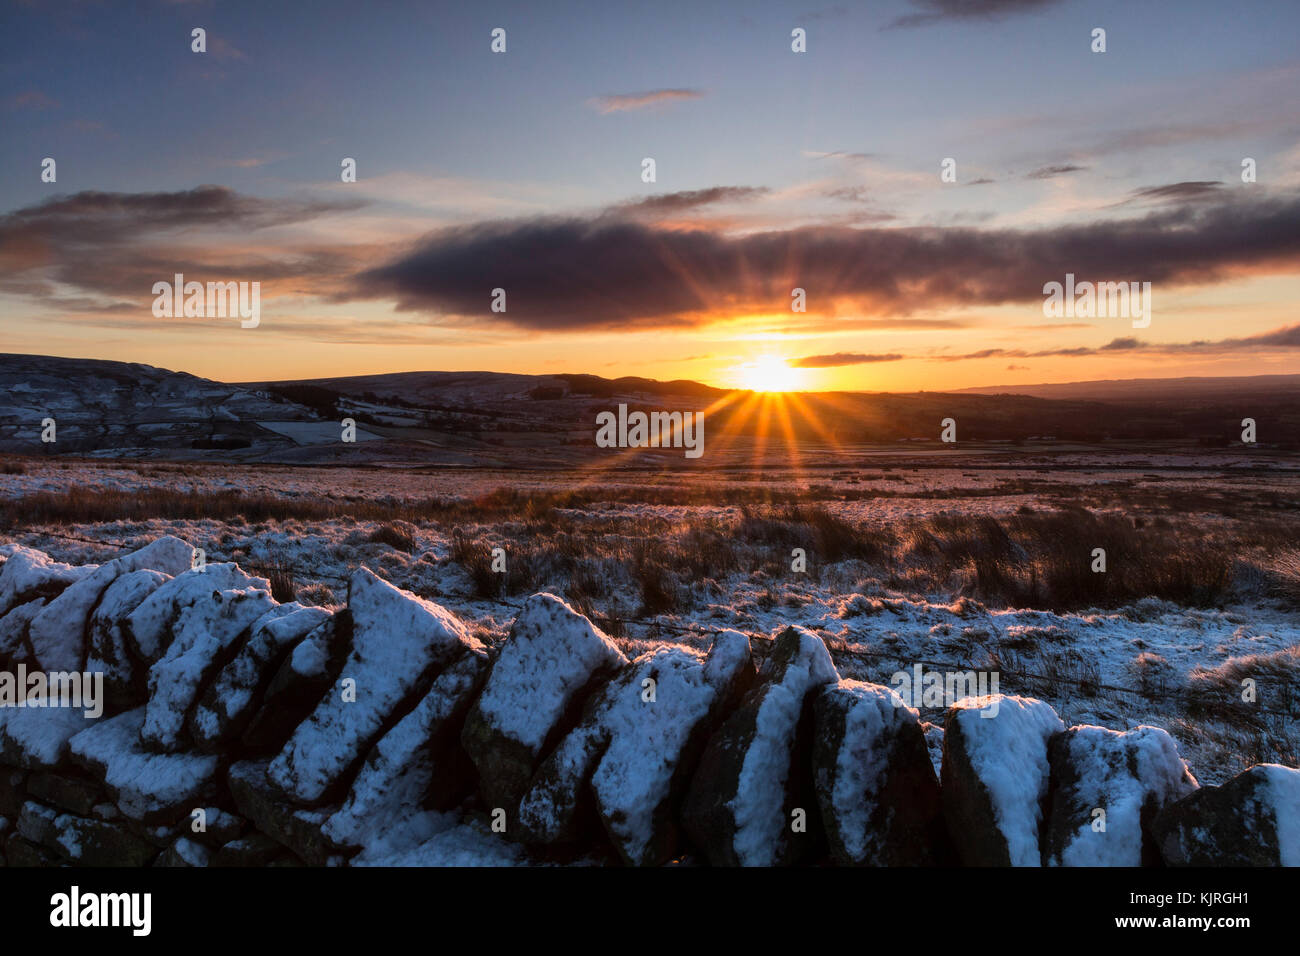 Stotley, Teesdale, County Durham, UK. Saturday 25th November 2017. UK Weather. It was a colourful if rather snowy - Stock Image